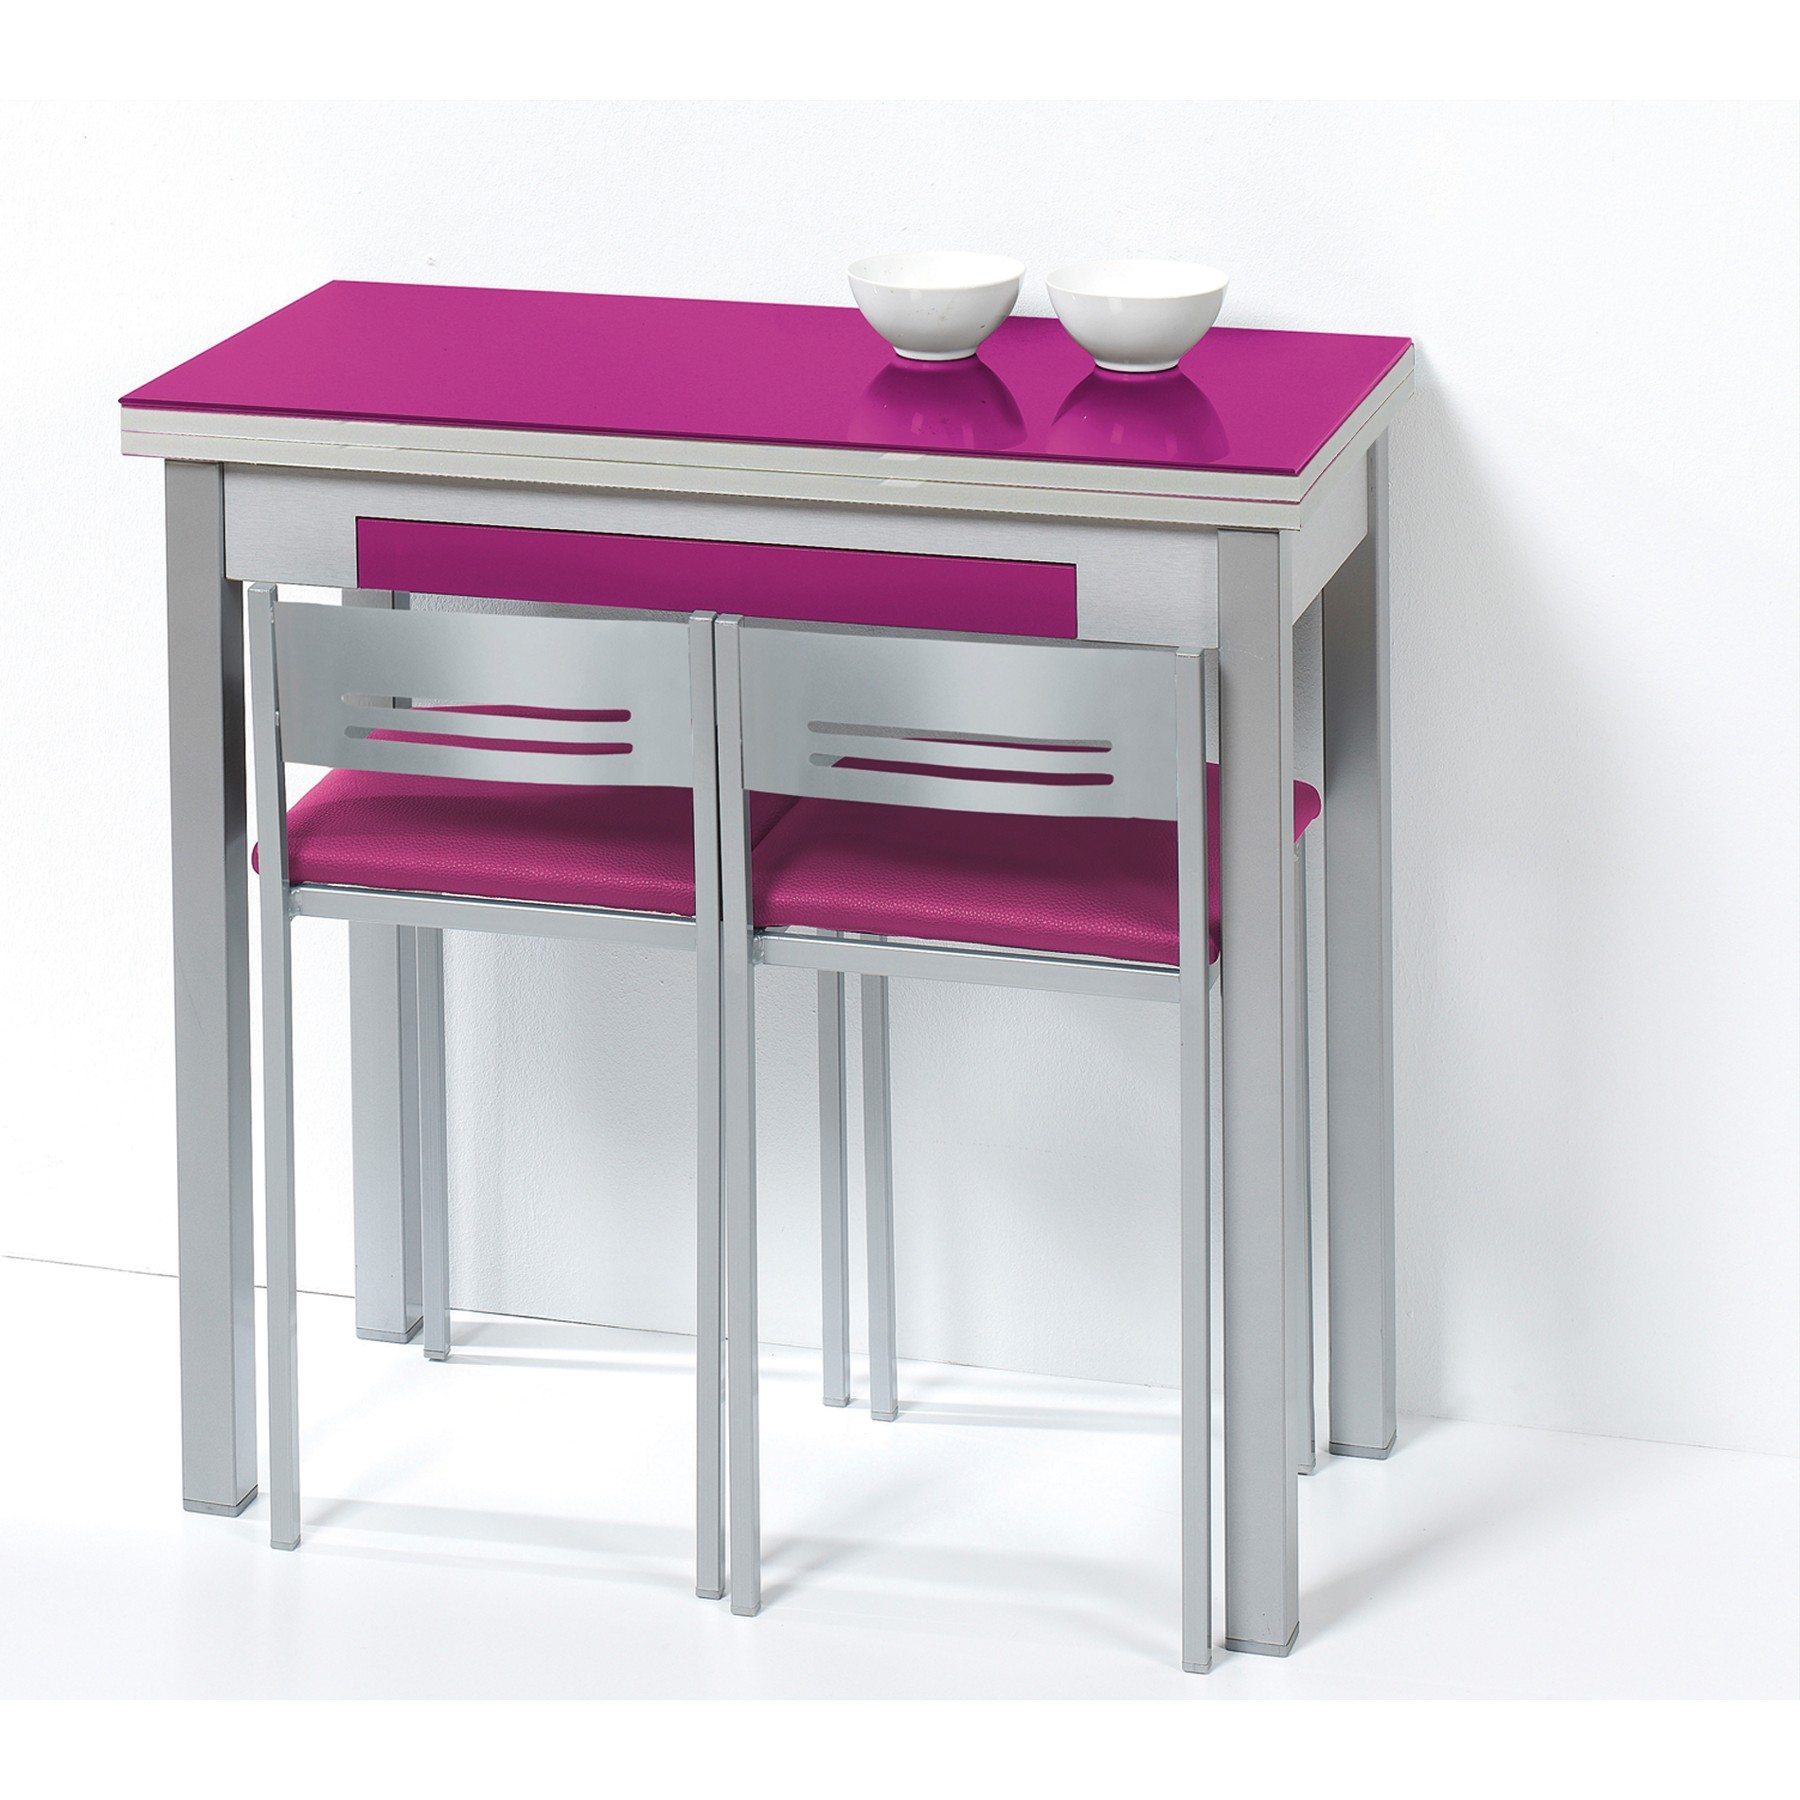 Pack de mesa libro de cocina y taburetes modelo magic - Sillas plegables conforama ...